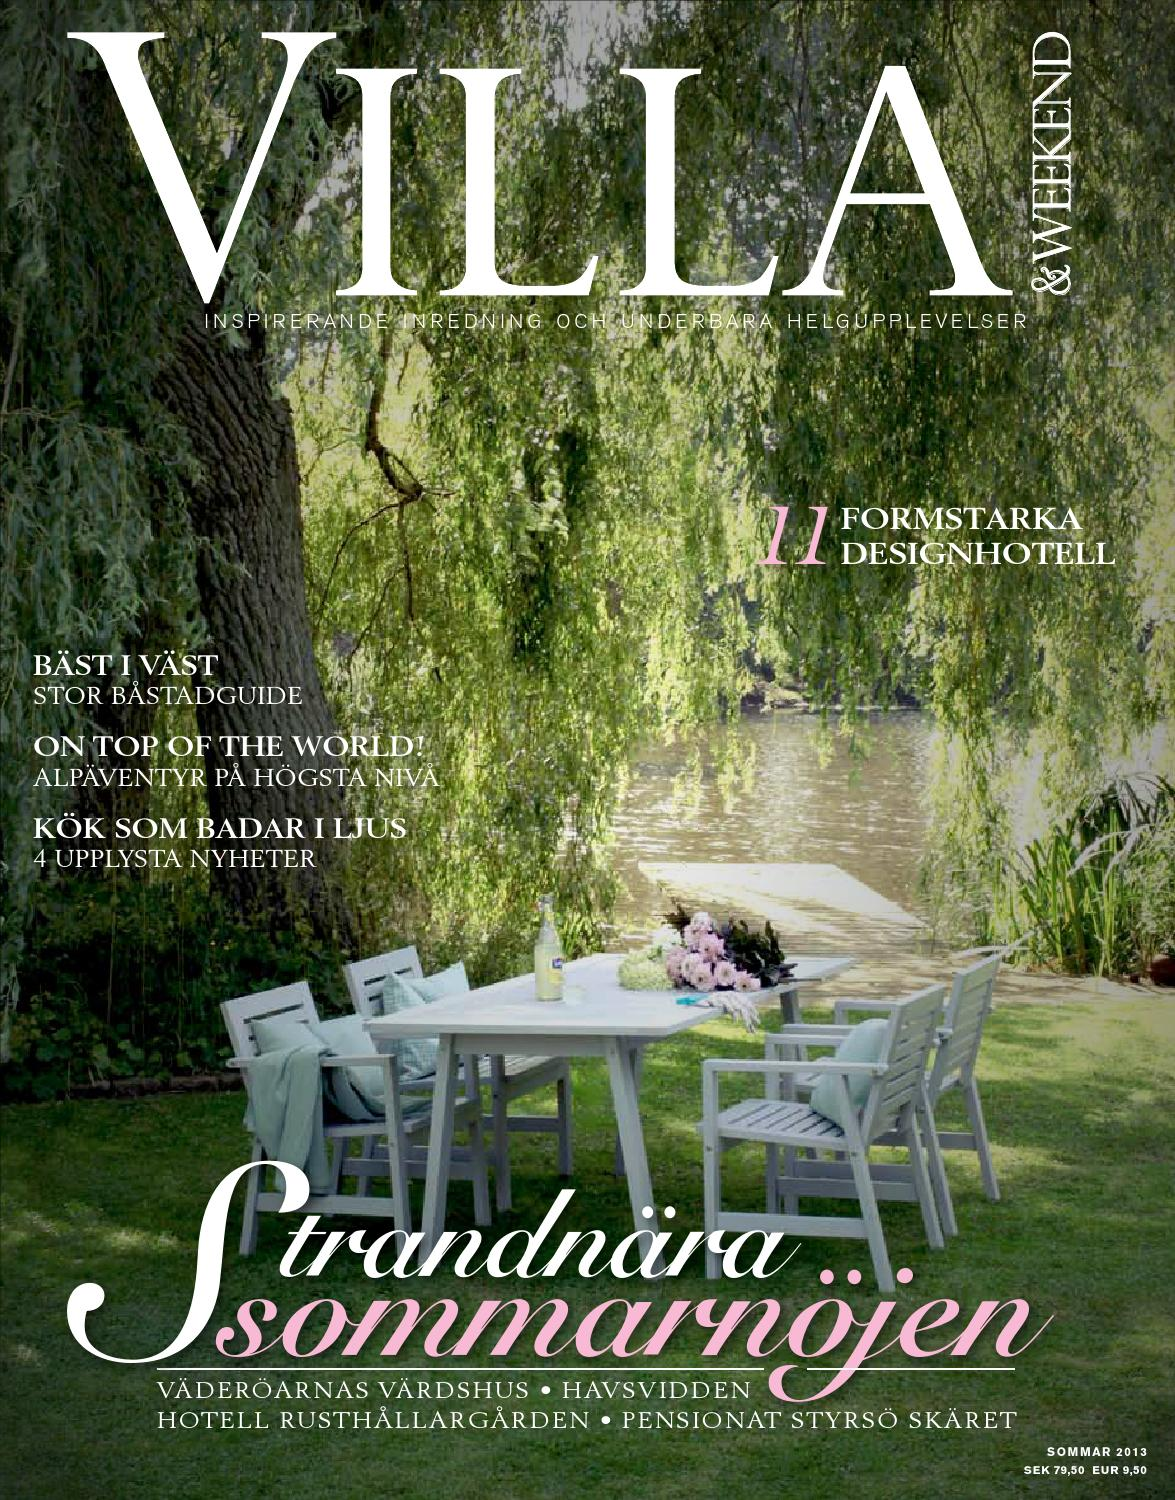 Villa & weekend sommar 2013 by bohman chirstian   issuu